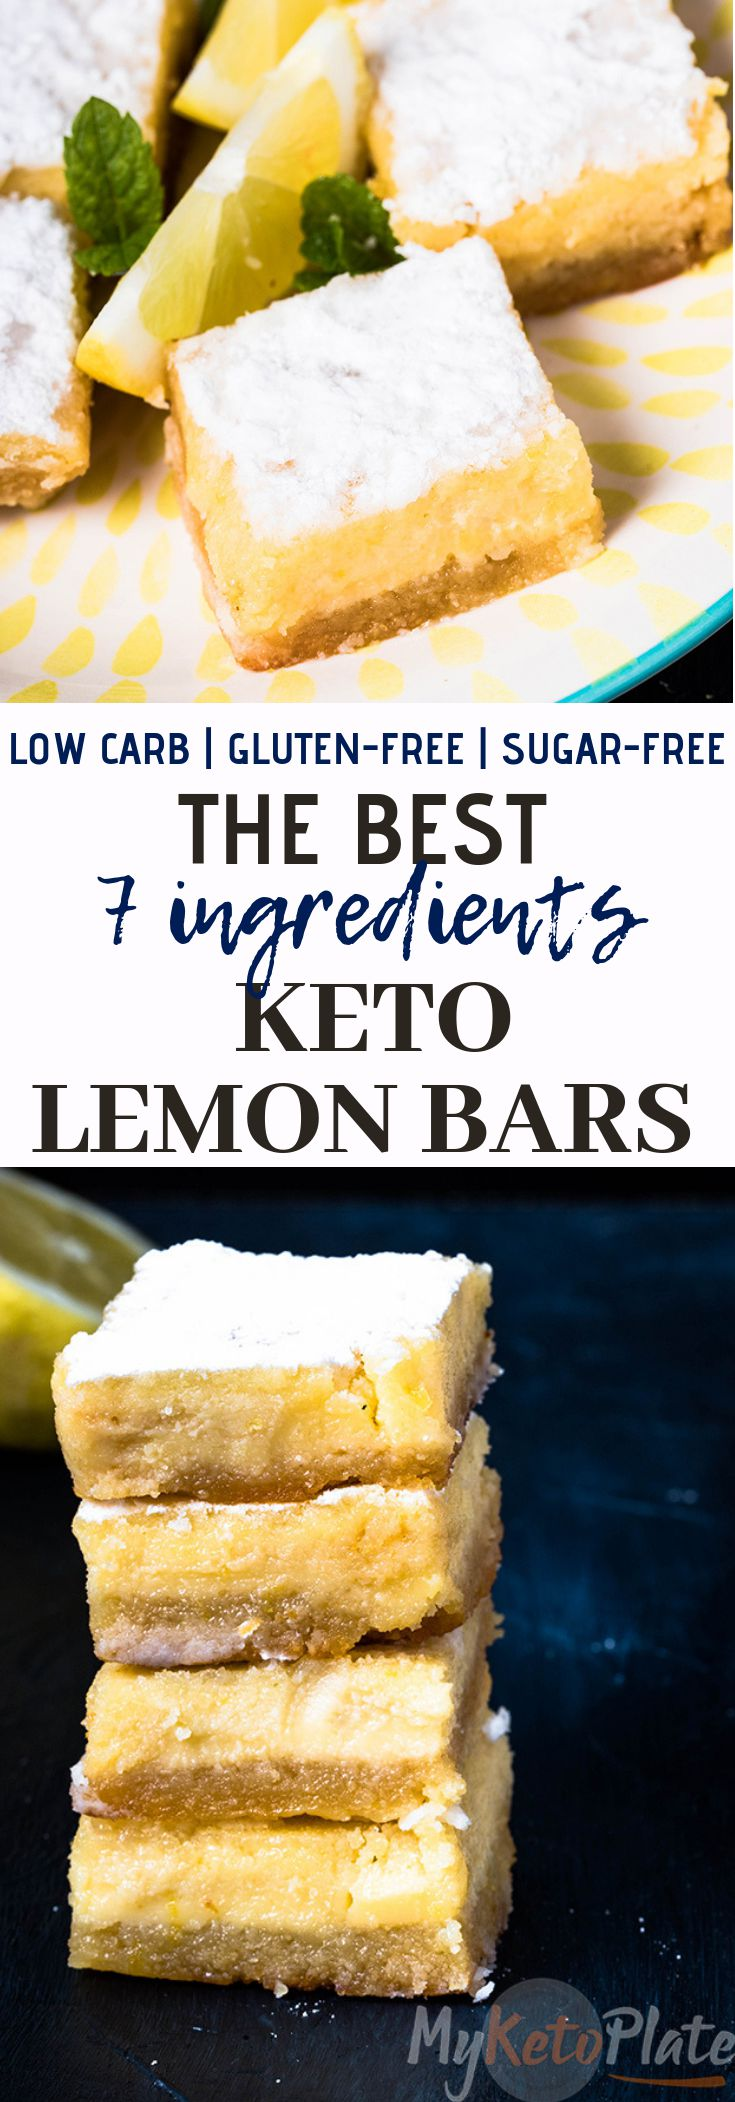 The Best Keto Lemon Bars – Only 4g Carbs